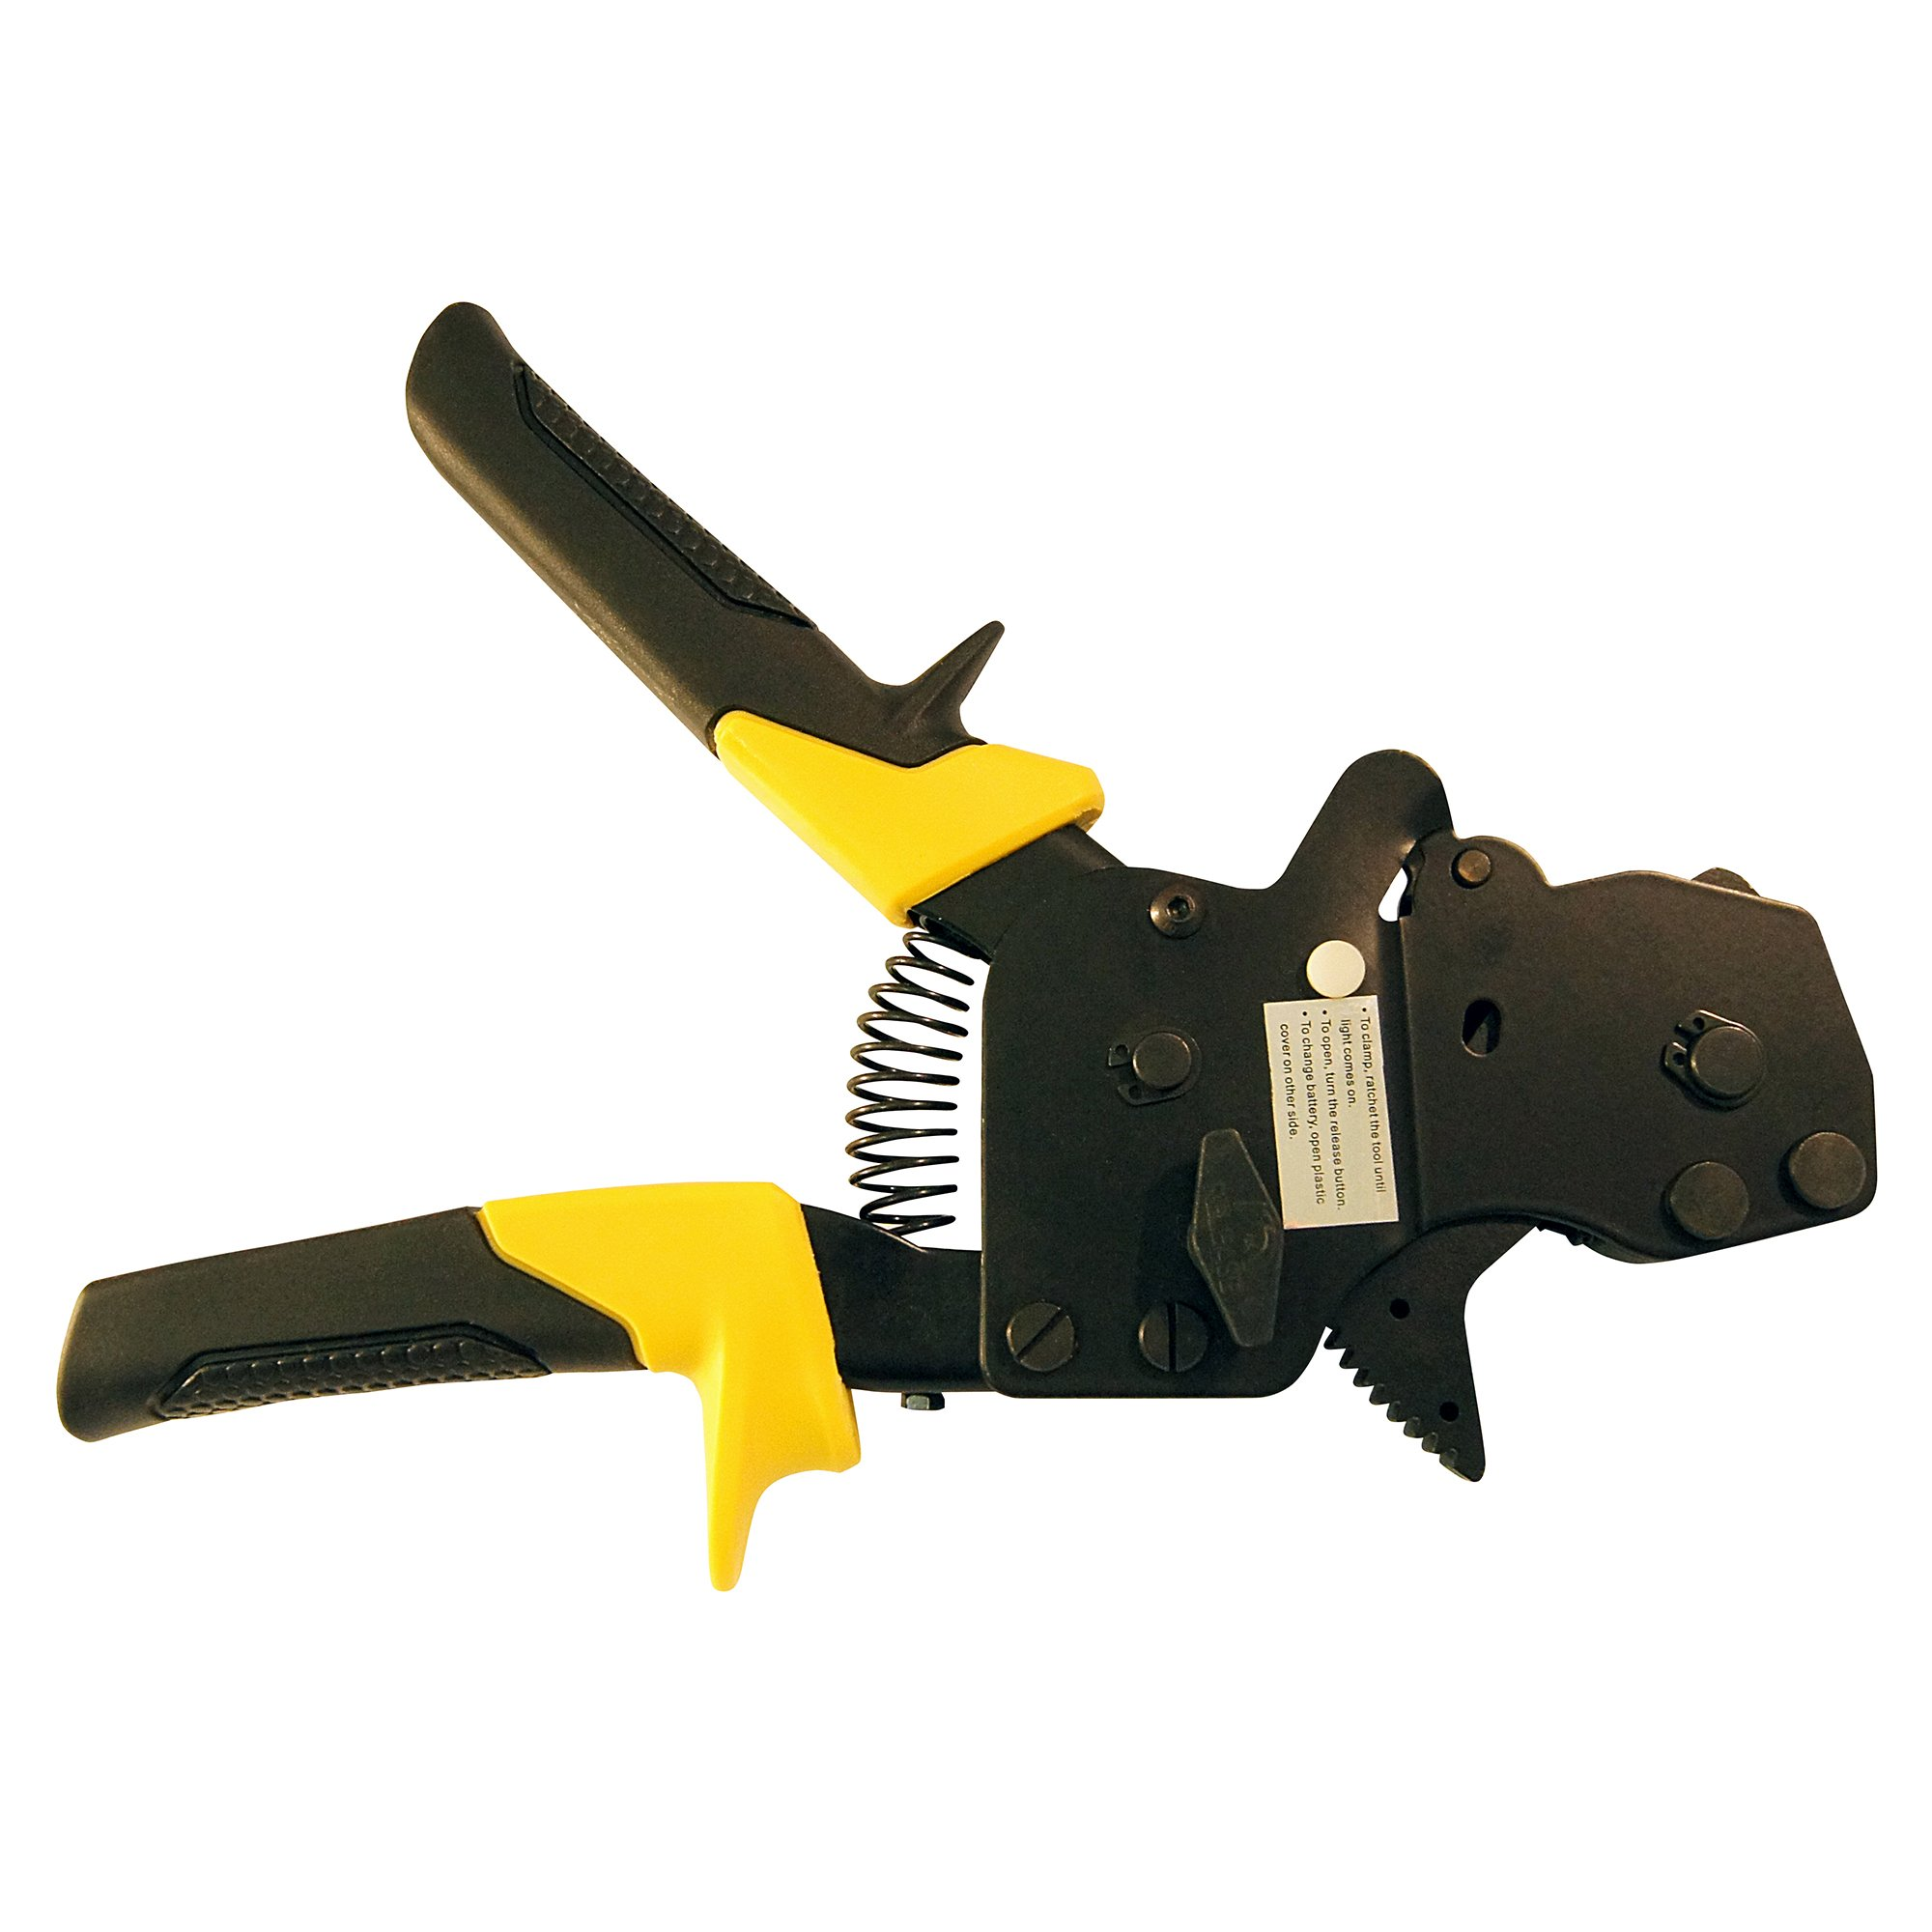 Apollo PEX 69PTBJ0010C 3/8-inch - 1-inch One Hand Cinch Clamp Tool by Conbraco Industries